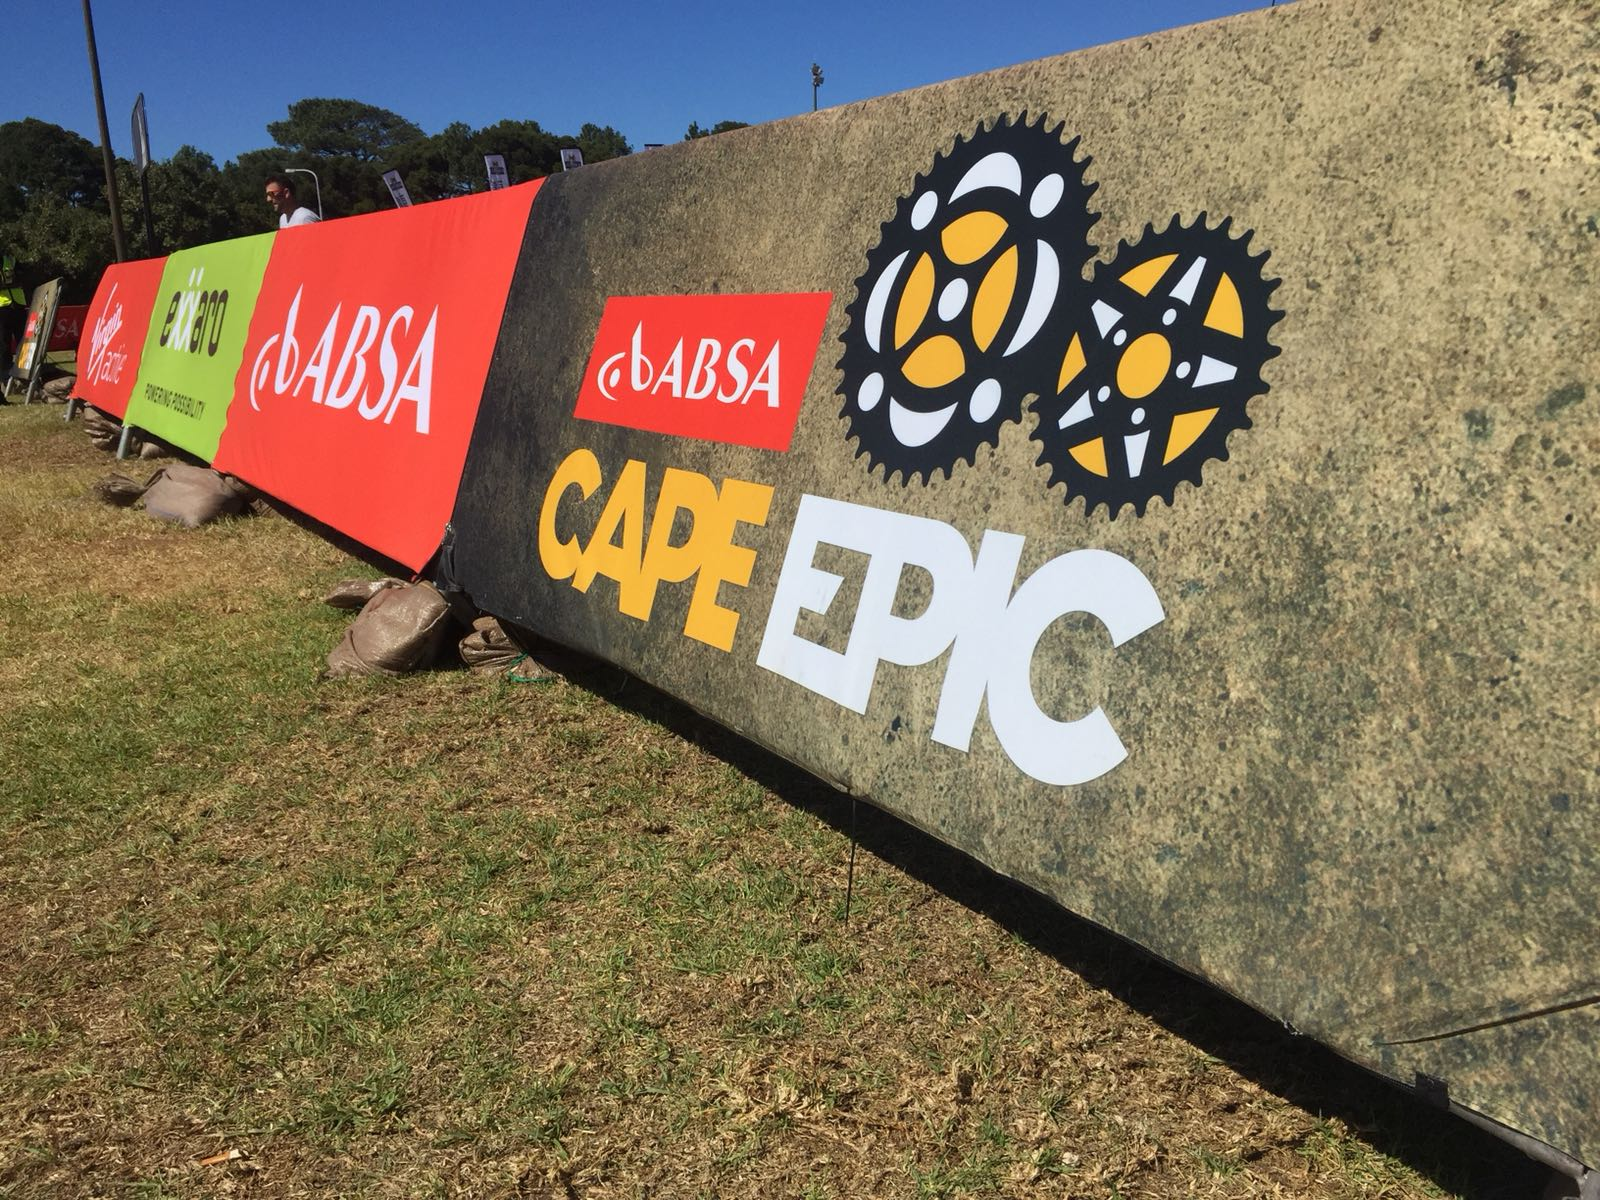 Cape Epic Adventure Cycle South Africa 2018